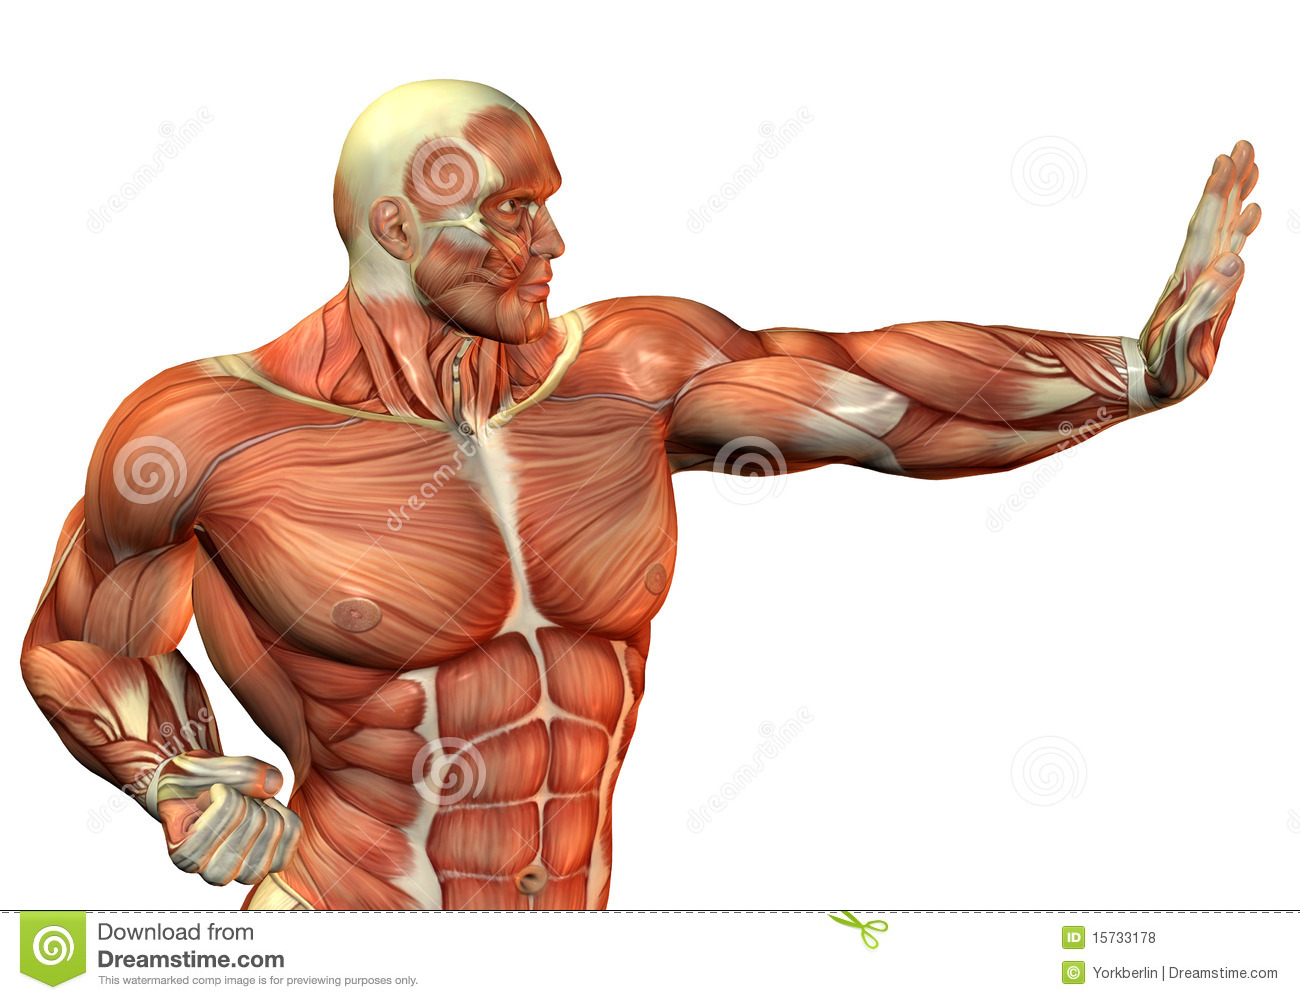 muscle head and upper body stock images - image: 32857544, Muscles